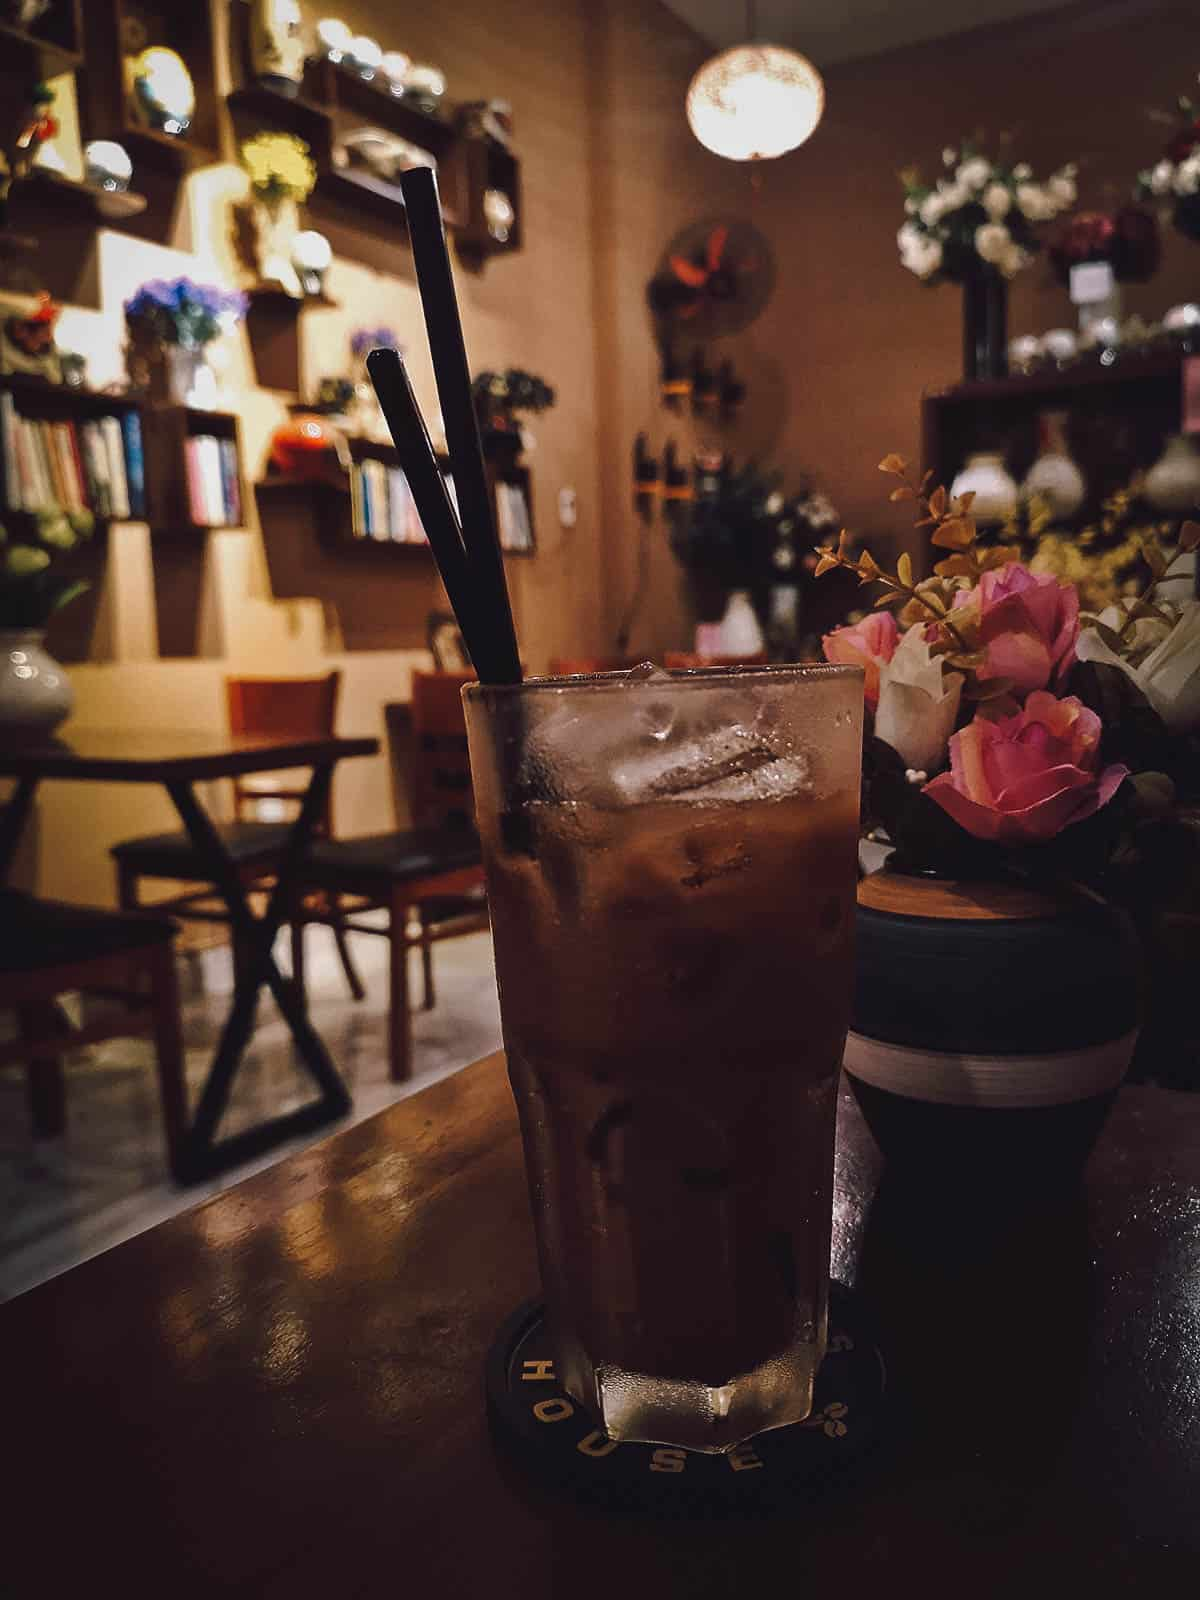 Iced milk coffee at 1987's House Coffee & Flower